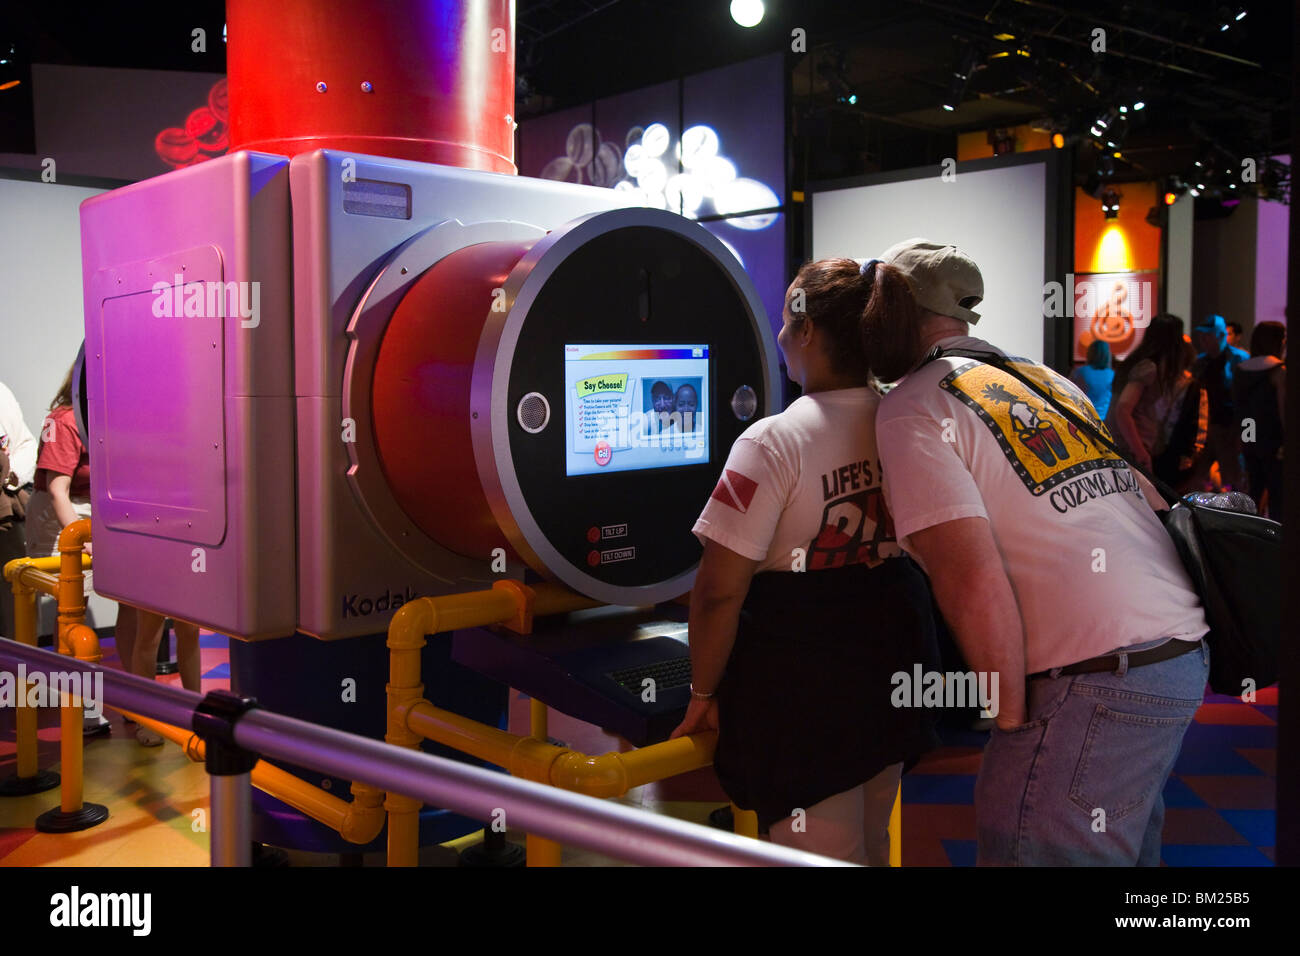 Kissimmee, FL - Jan 2009 - Guests use Kodak equipment to take pictures of themselves at Walt Disney World's - Stock Image